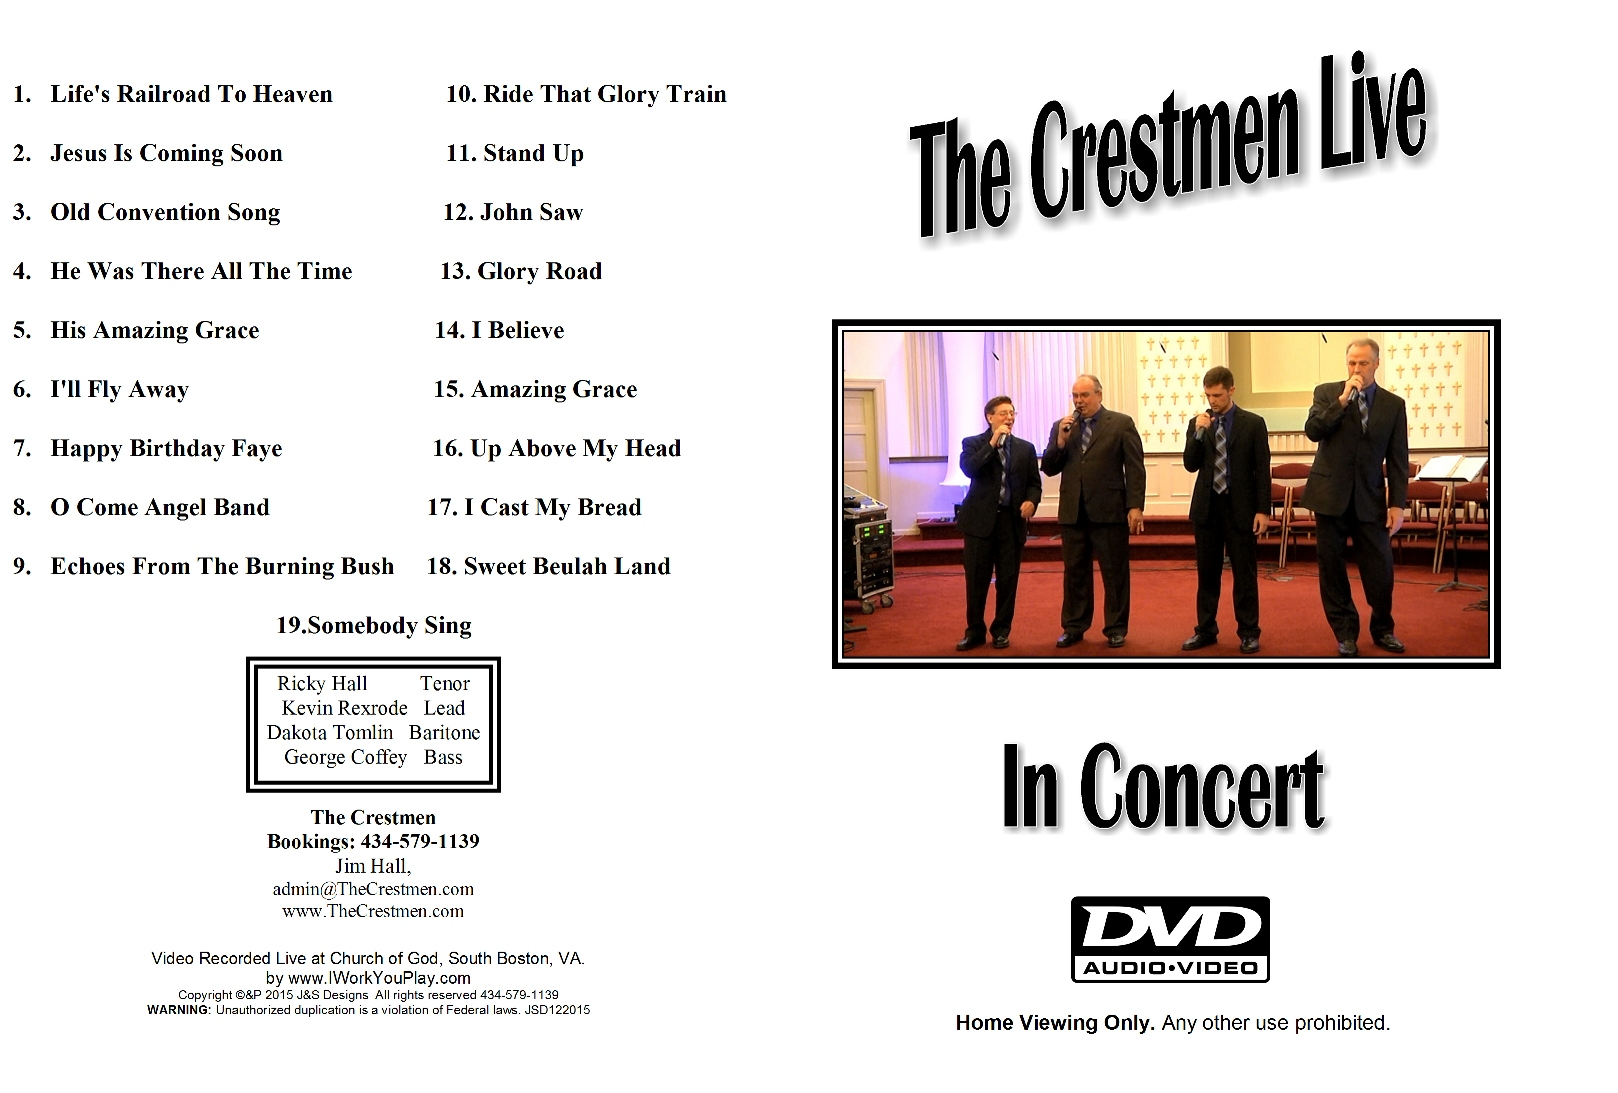 The Crestmen Live DVDfront and back